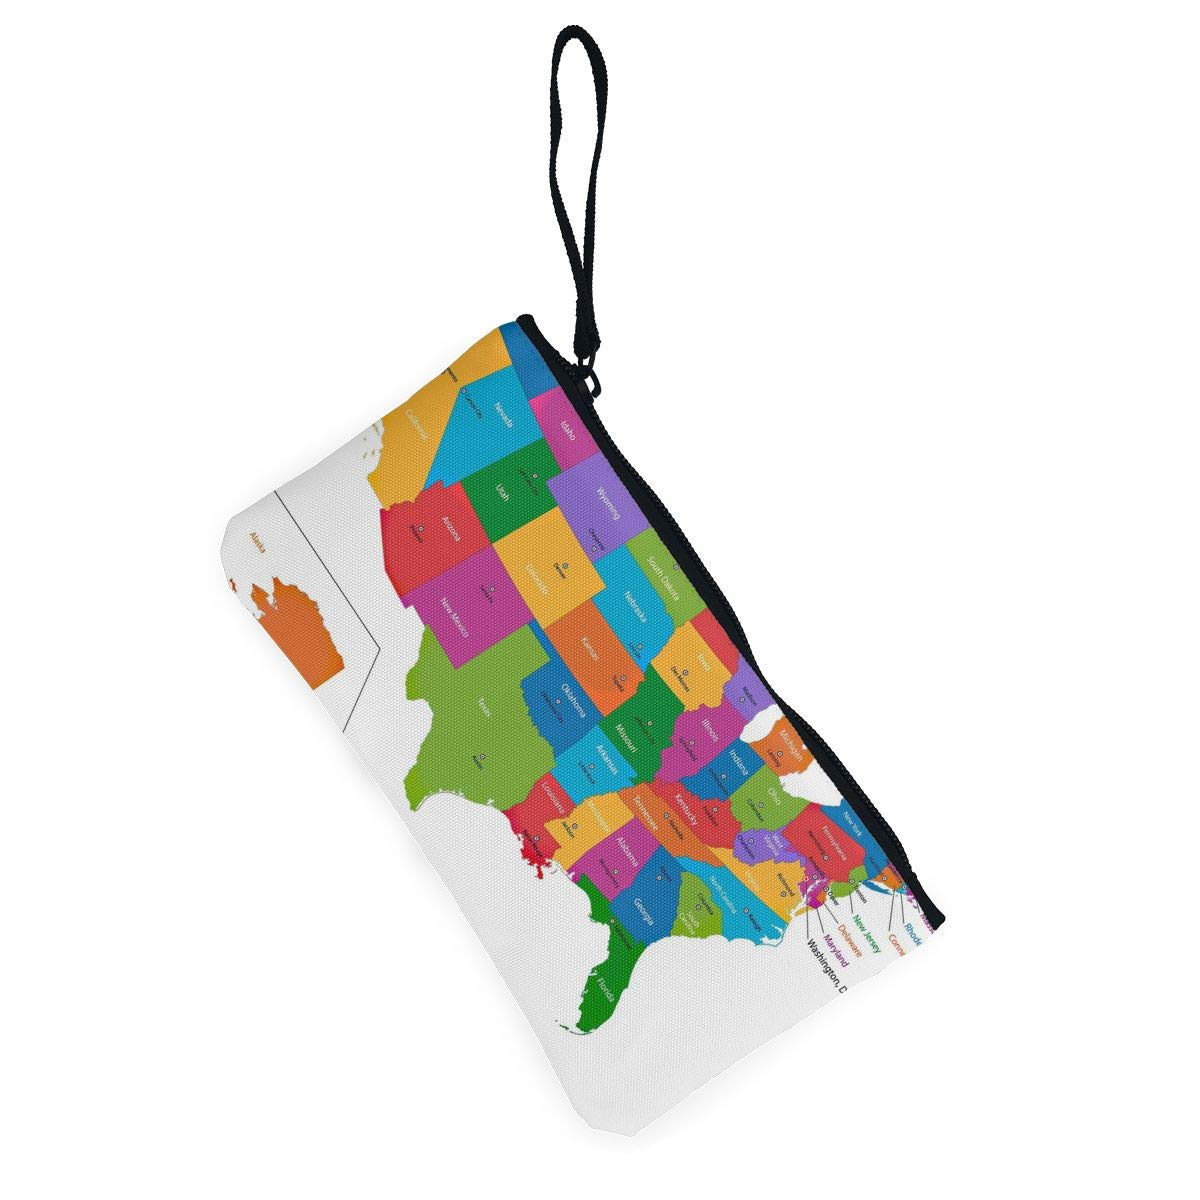 Maple Memories Colorful USA Map Portable Canvas Coin Purse Change Purse Pouch Mini Wallet Gifts For Women Girls